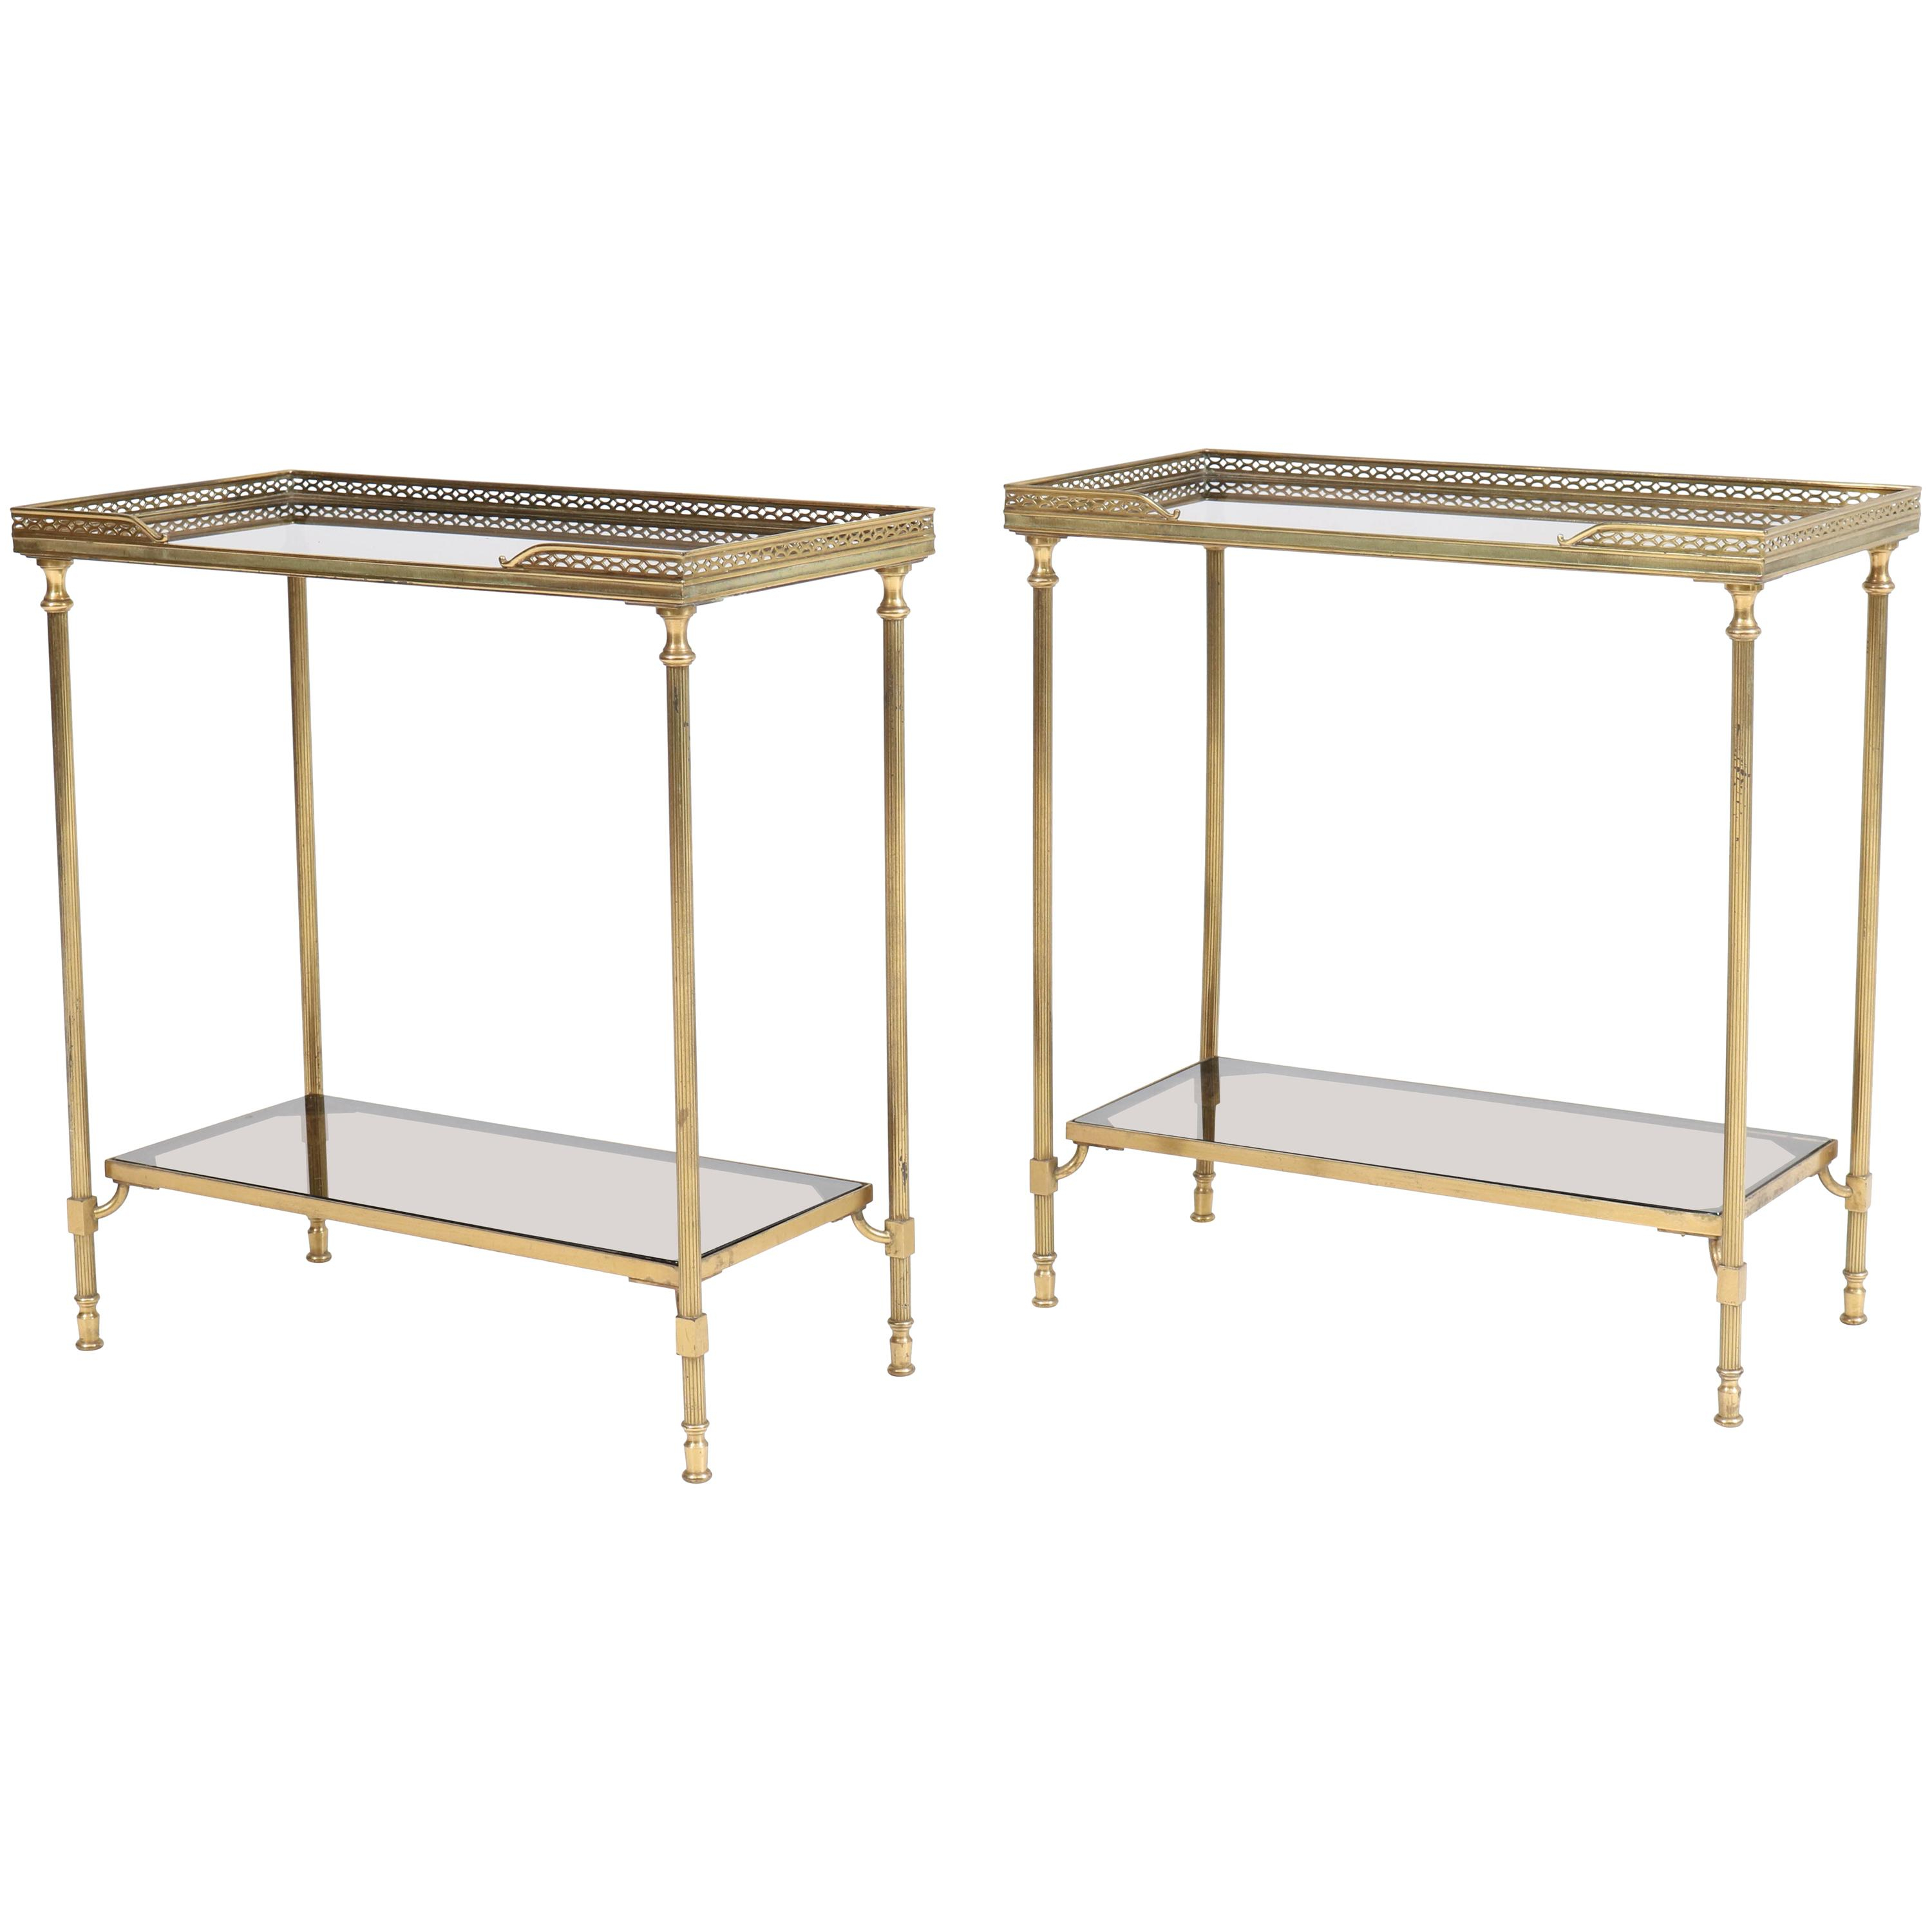 Famous Maison Jansen Side Tables – 65 For Sale At 1stdibs Intended For Mix Leather Imprint Metal Frame Console Tables (View 19 of 20)